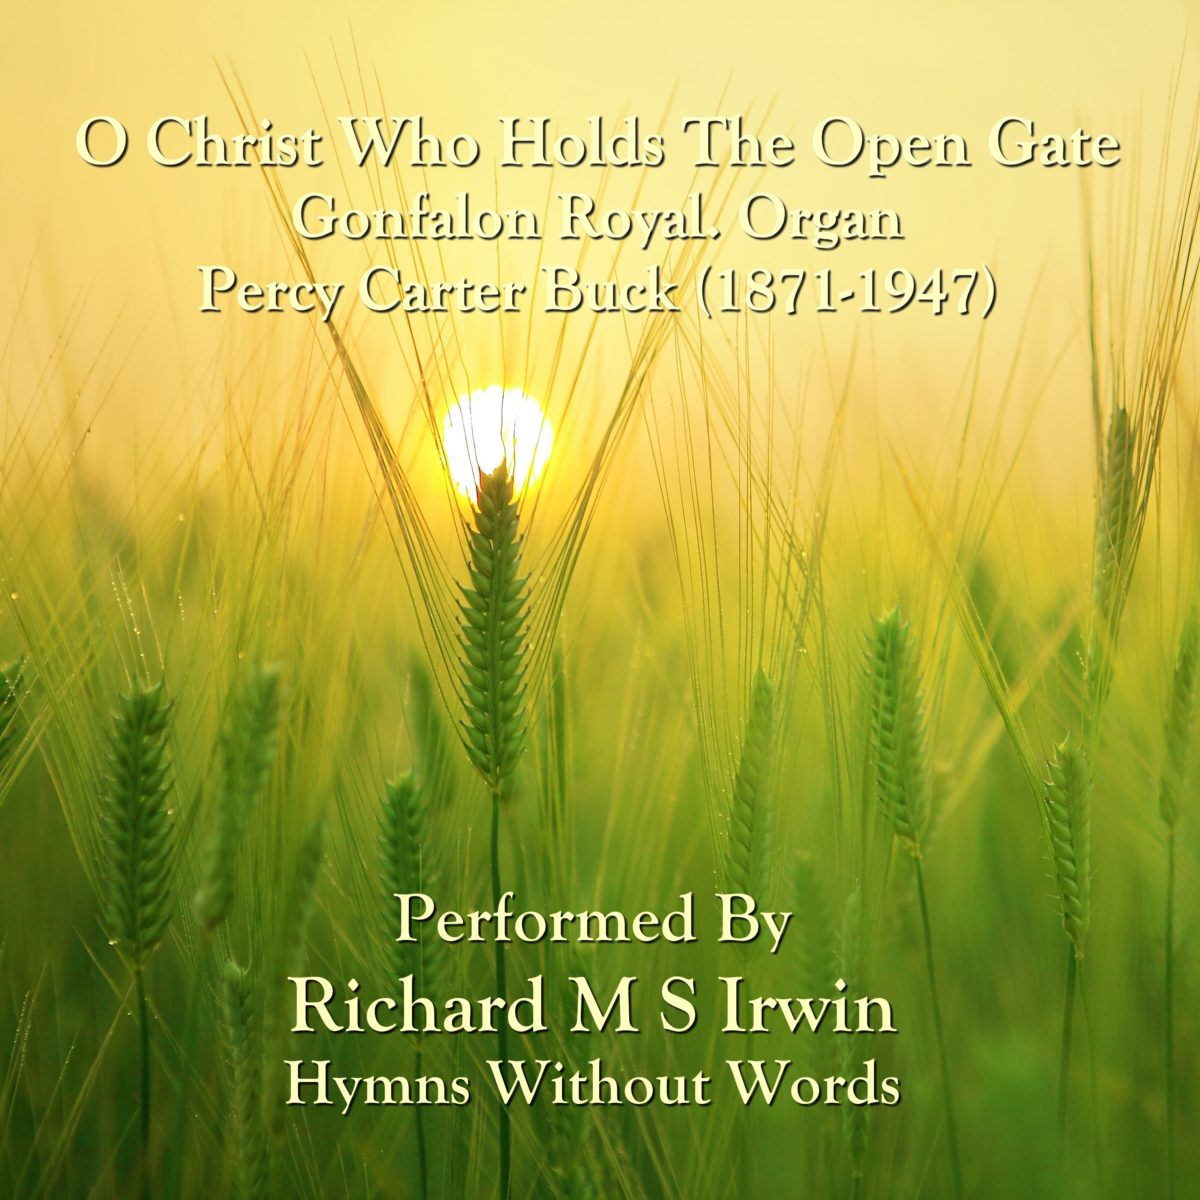 O Christ Who Holds The Open Gate (Gonfalon Royal, Organ, 4 Verses)